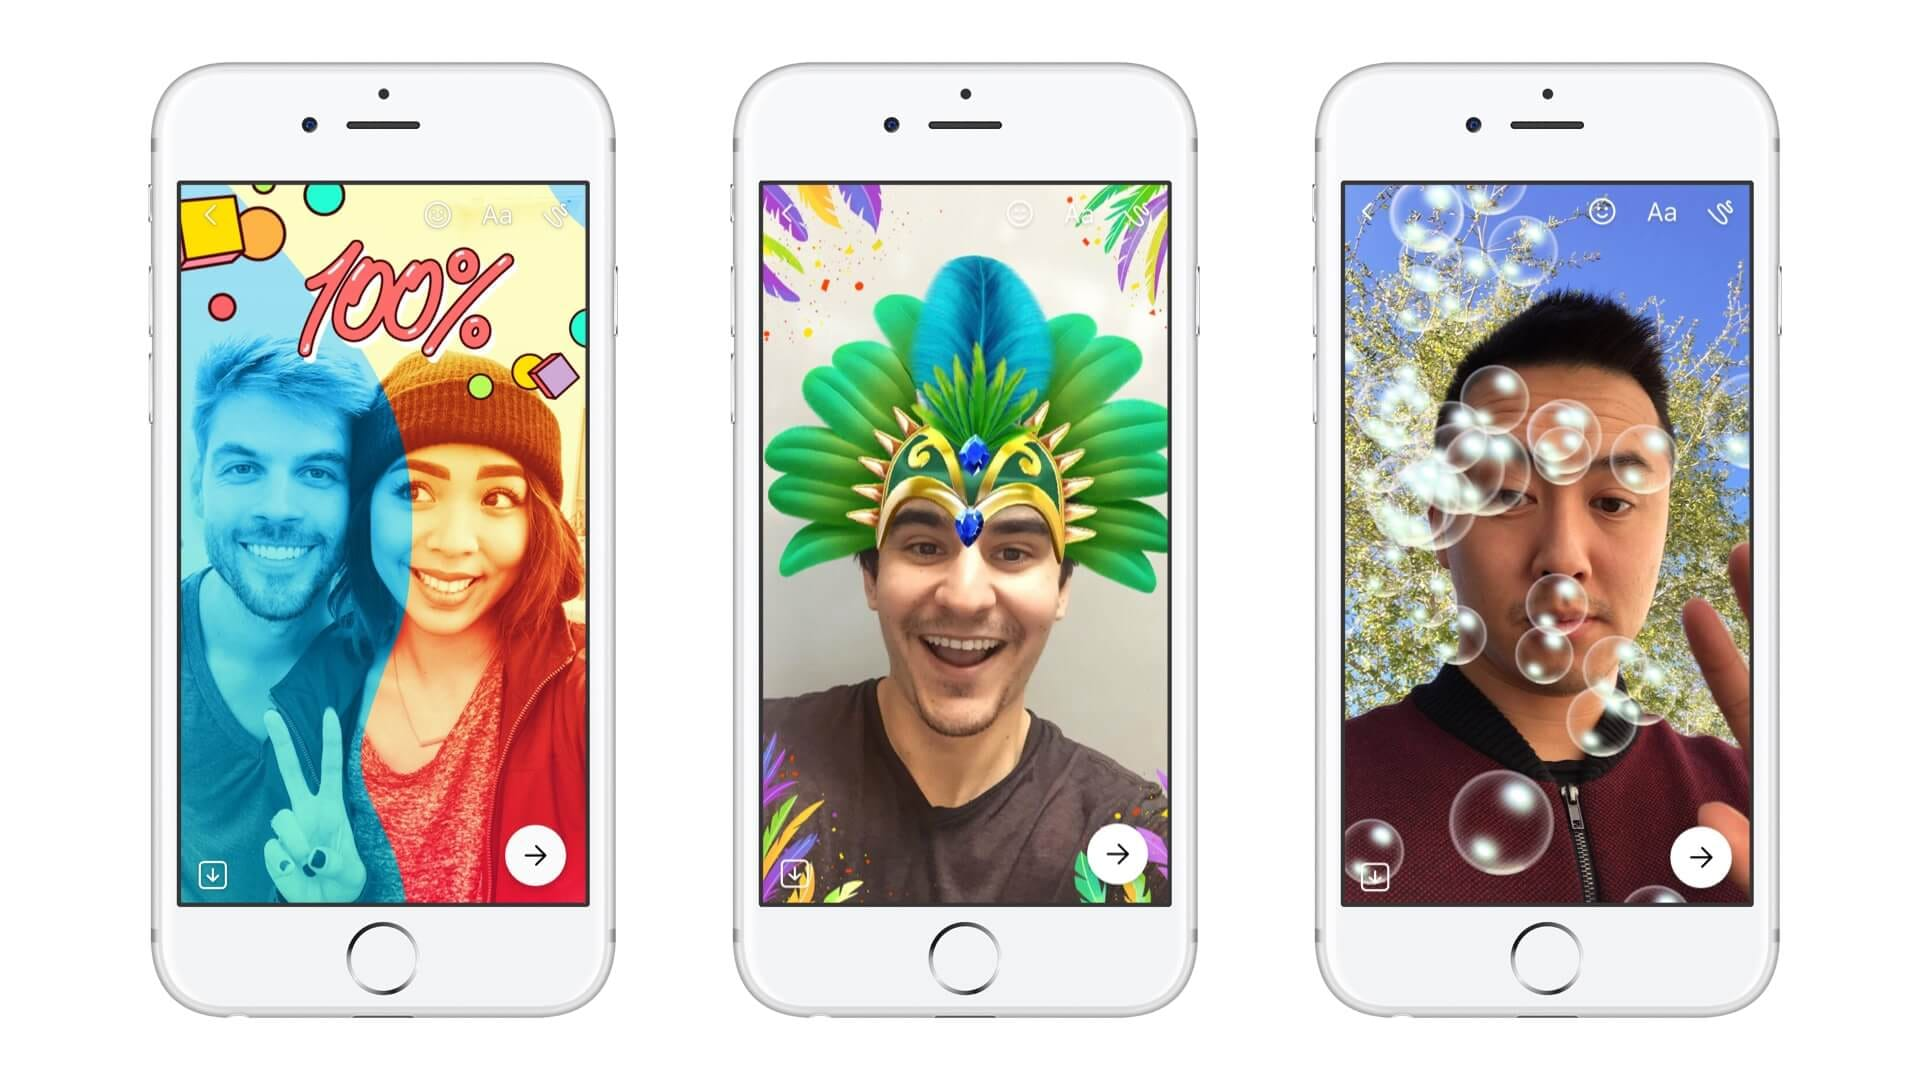 Stickers, emojis et dessins dans les Messenger Days de Facebook Messenger